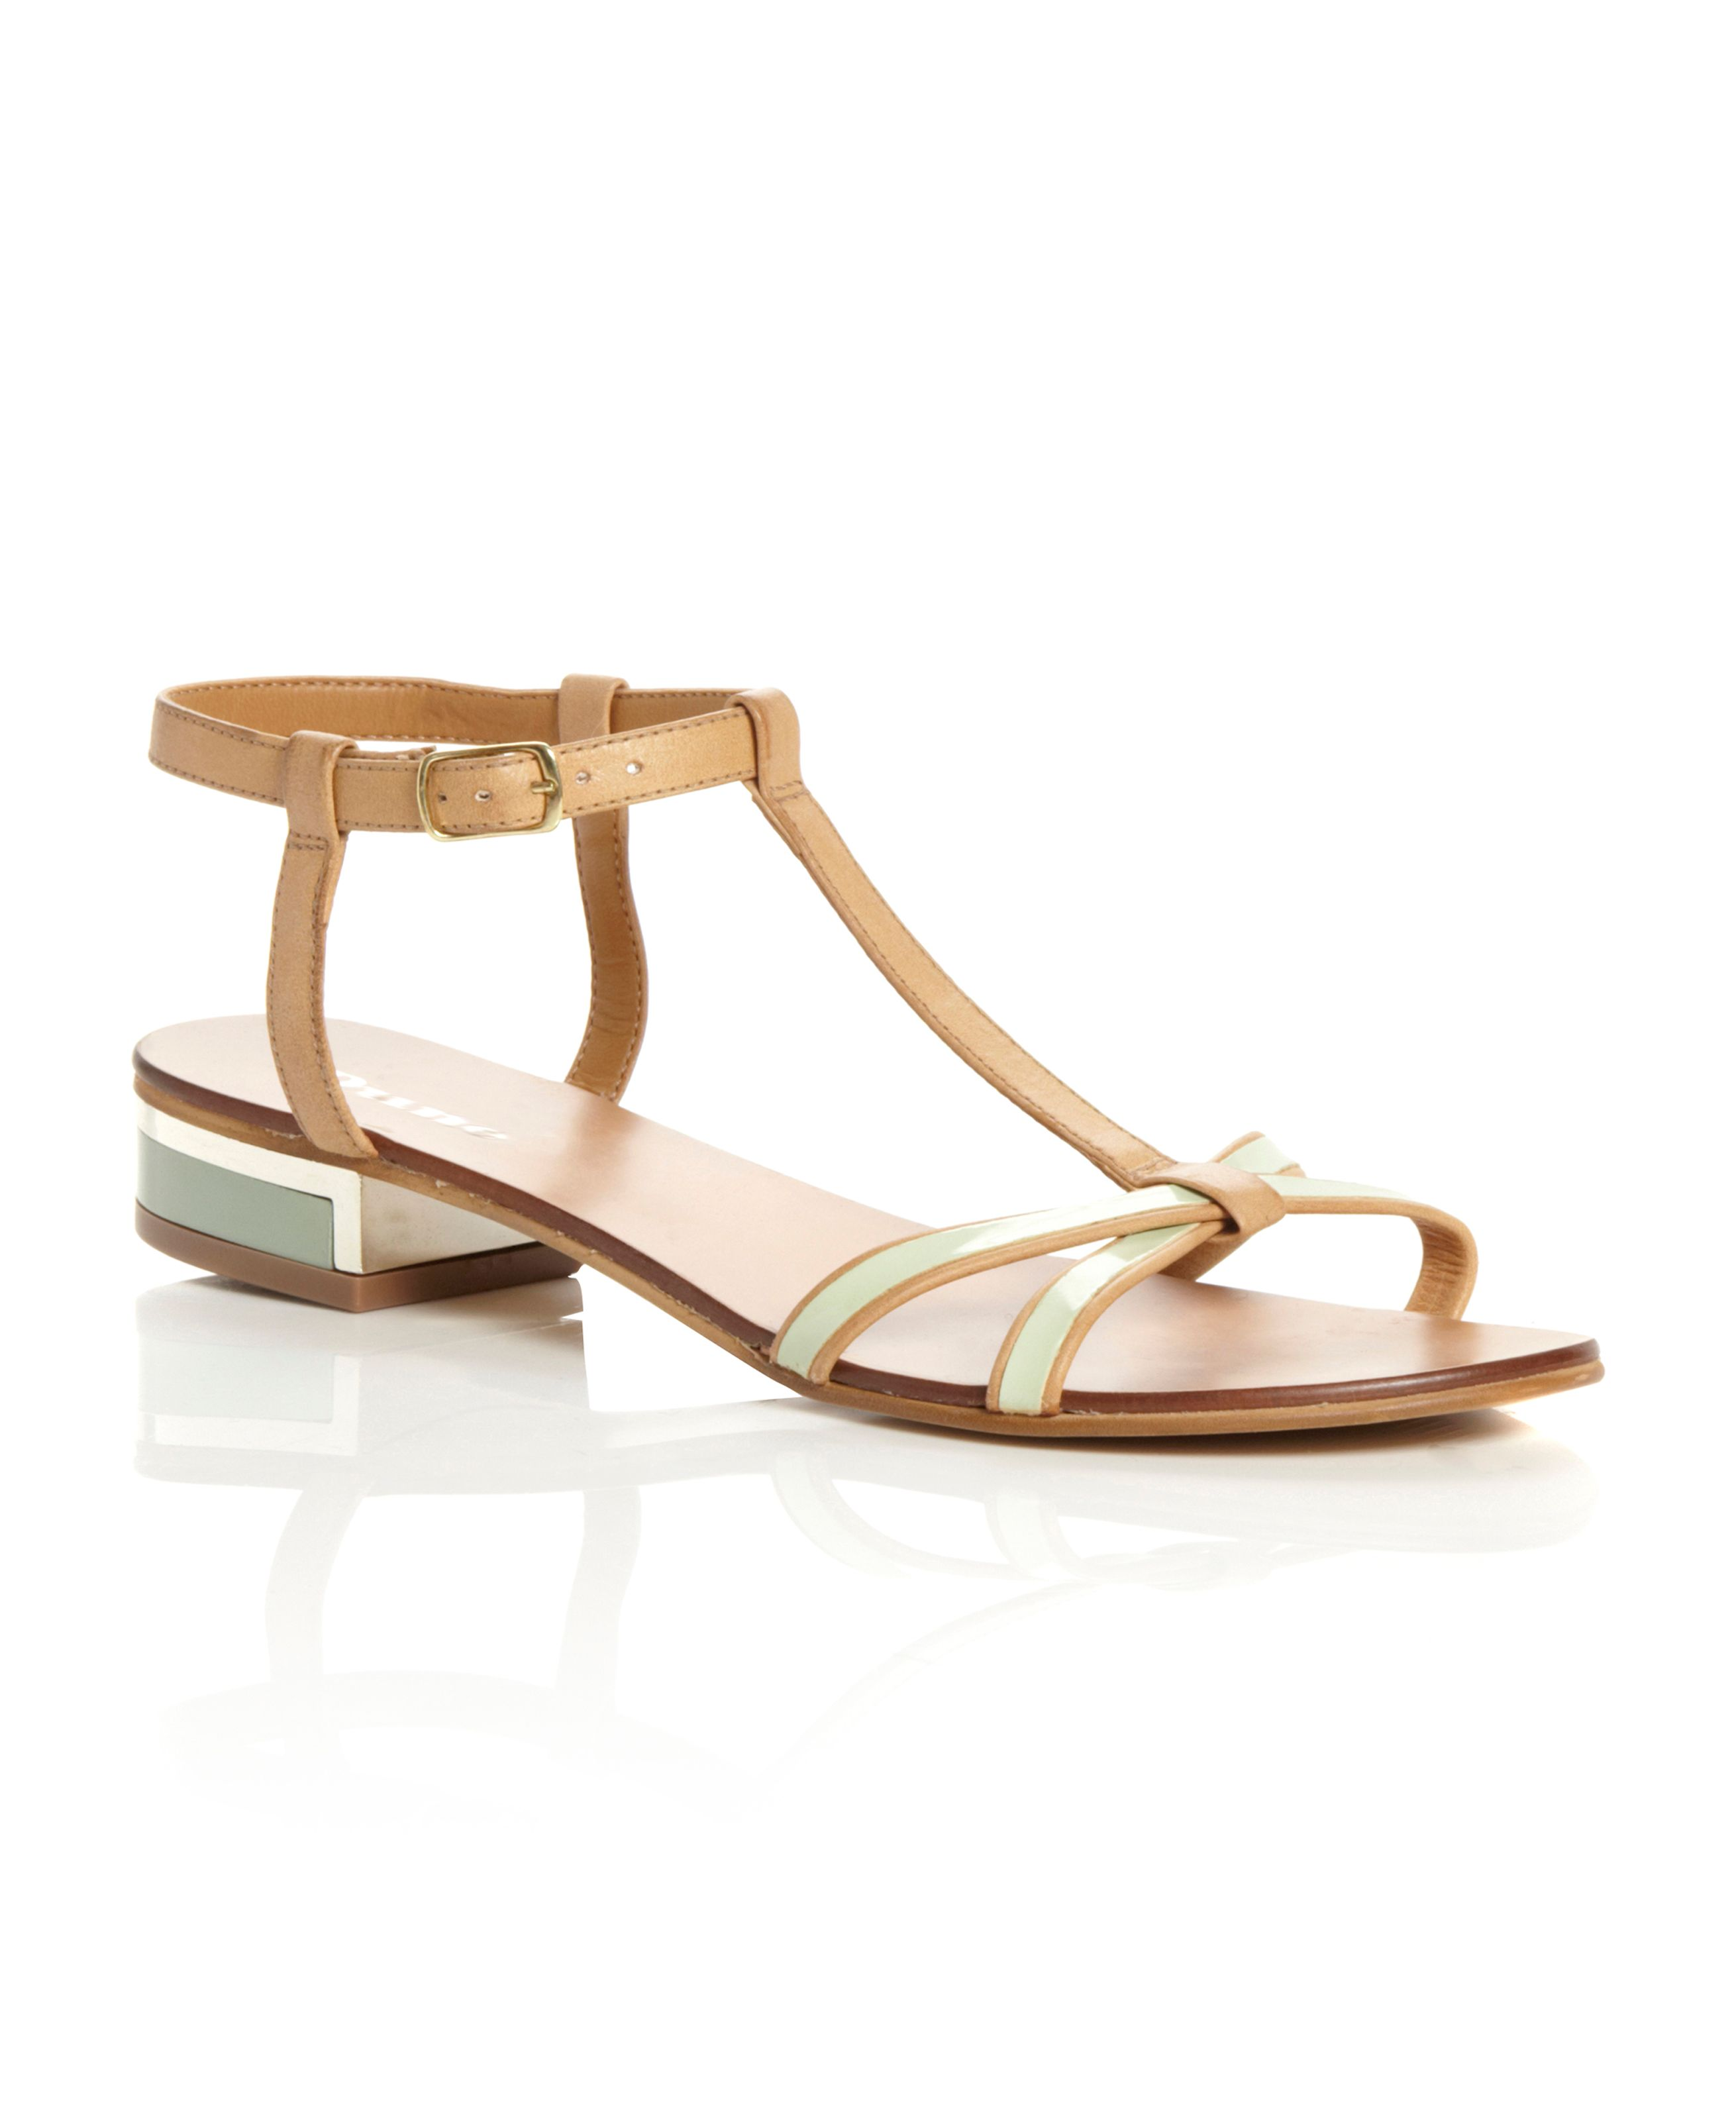 Finley low cross strap sandals